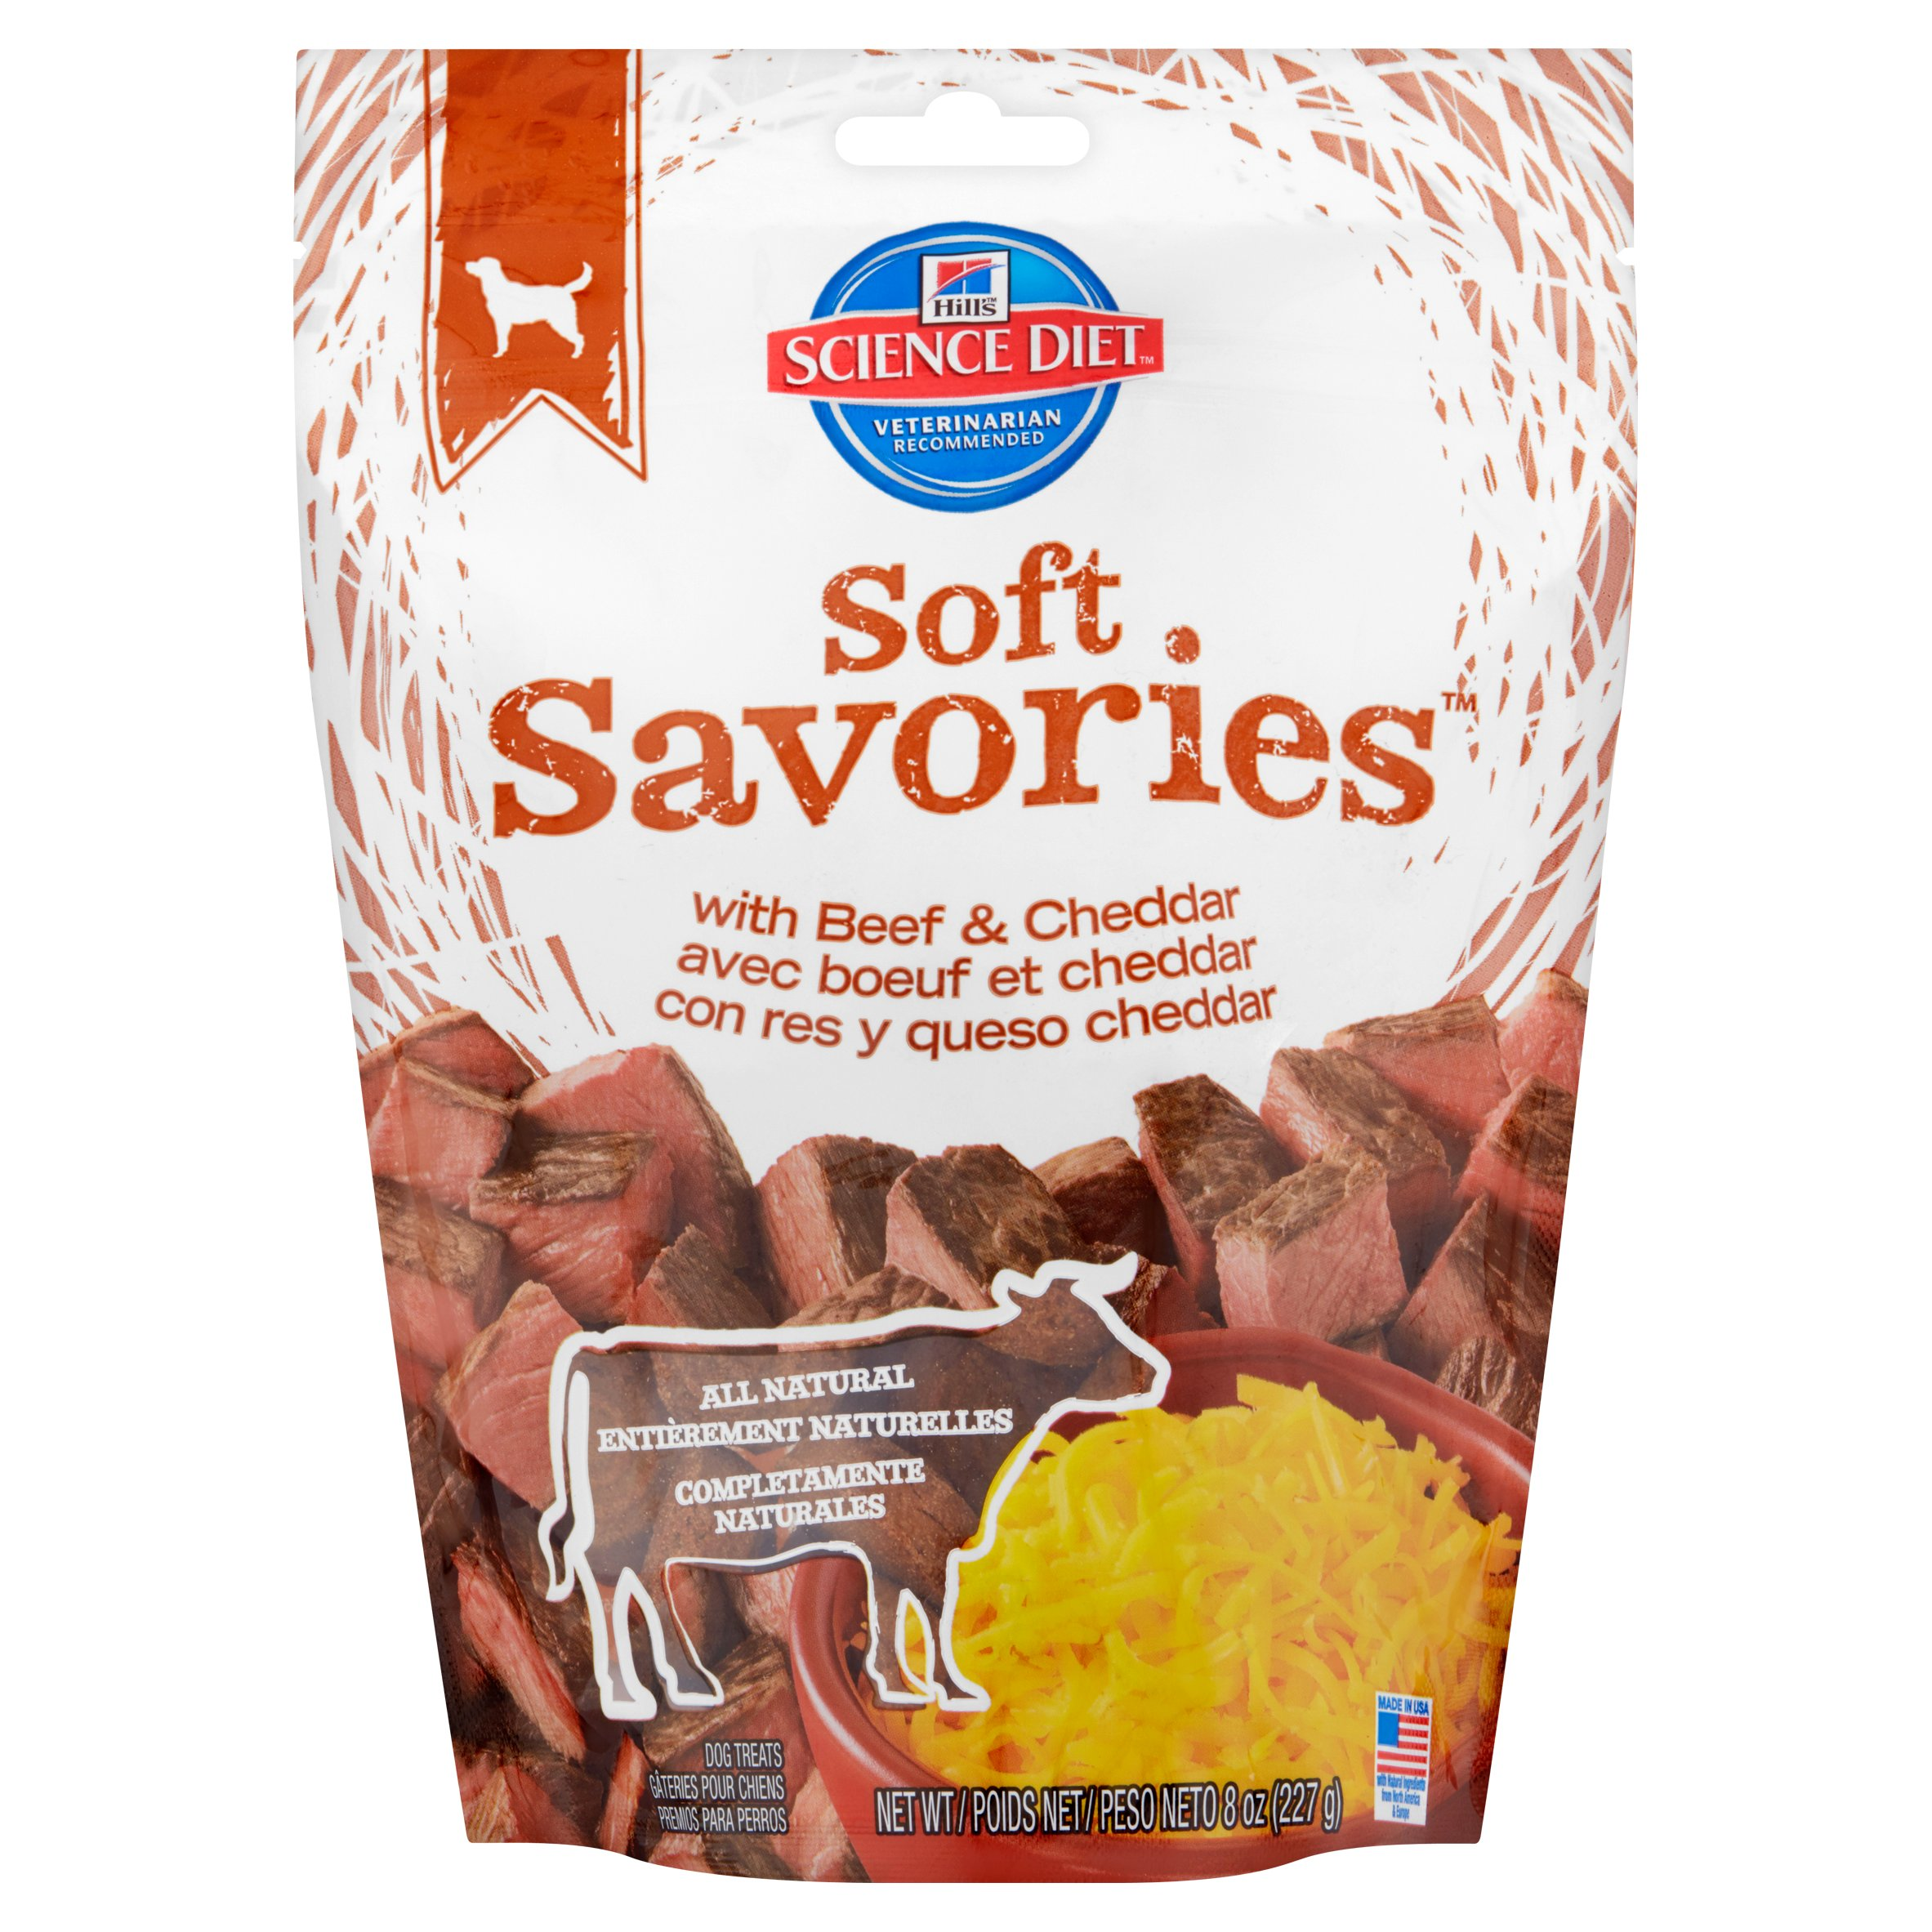 Hill's Science Diet Soft Savories with Beef and Cheddar Dog Treats, 8-oz Bag